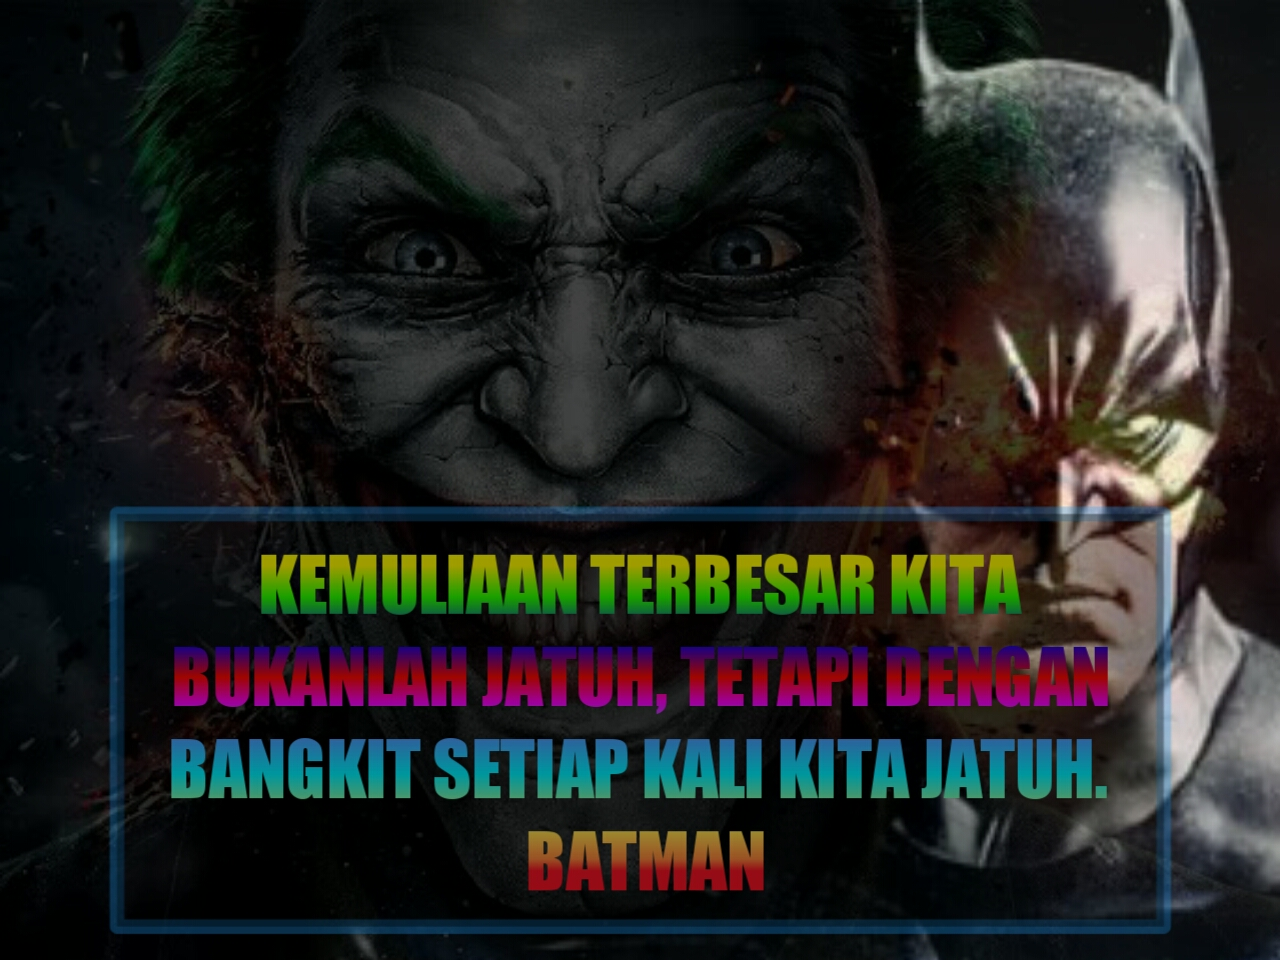 20 Kata kata joker quotes bijak joker dan kata kata batman status whatsapp fb instagram